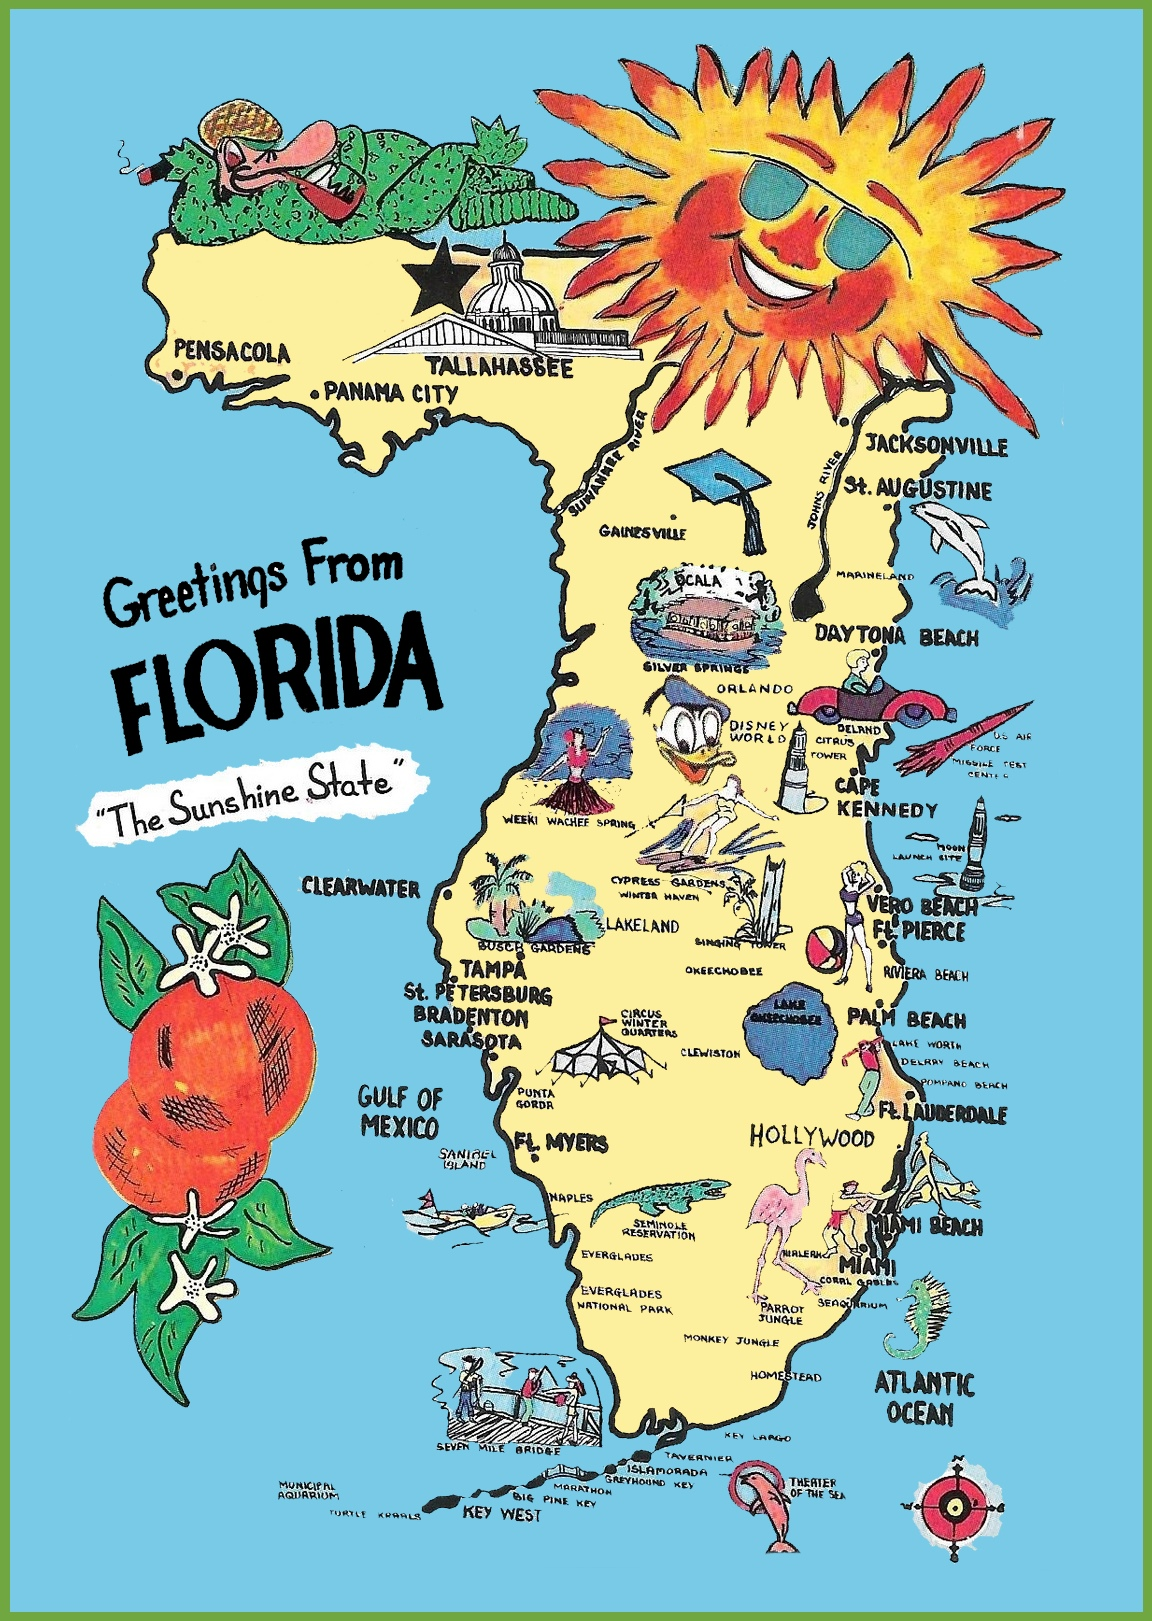 Pictorial travel map of Florida – Florida Travel Map